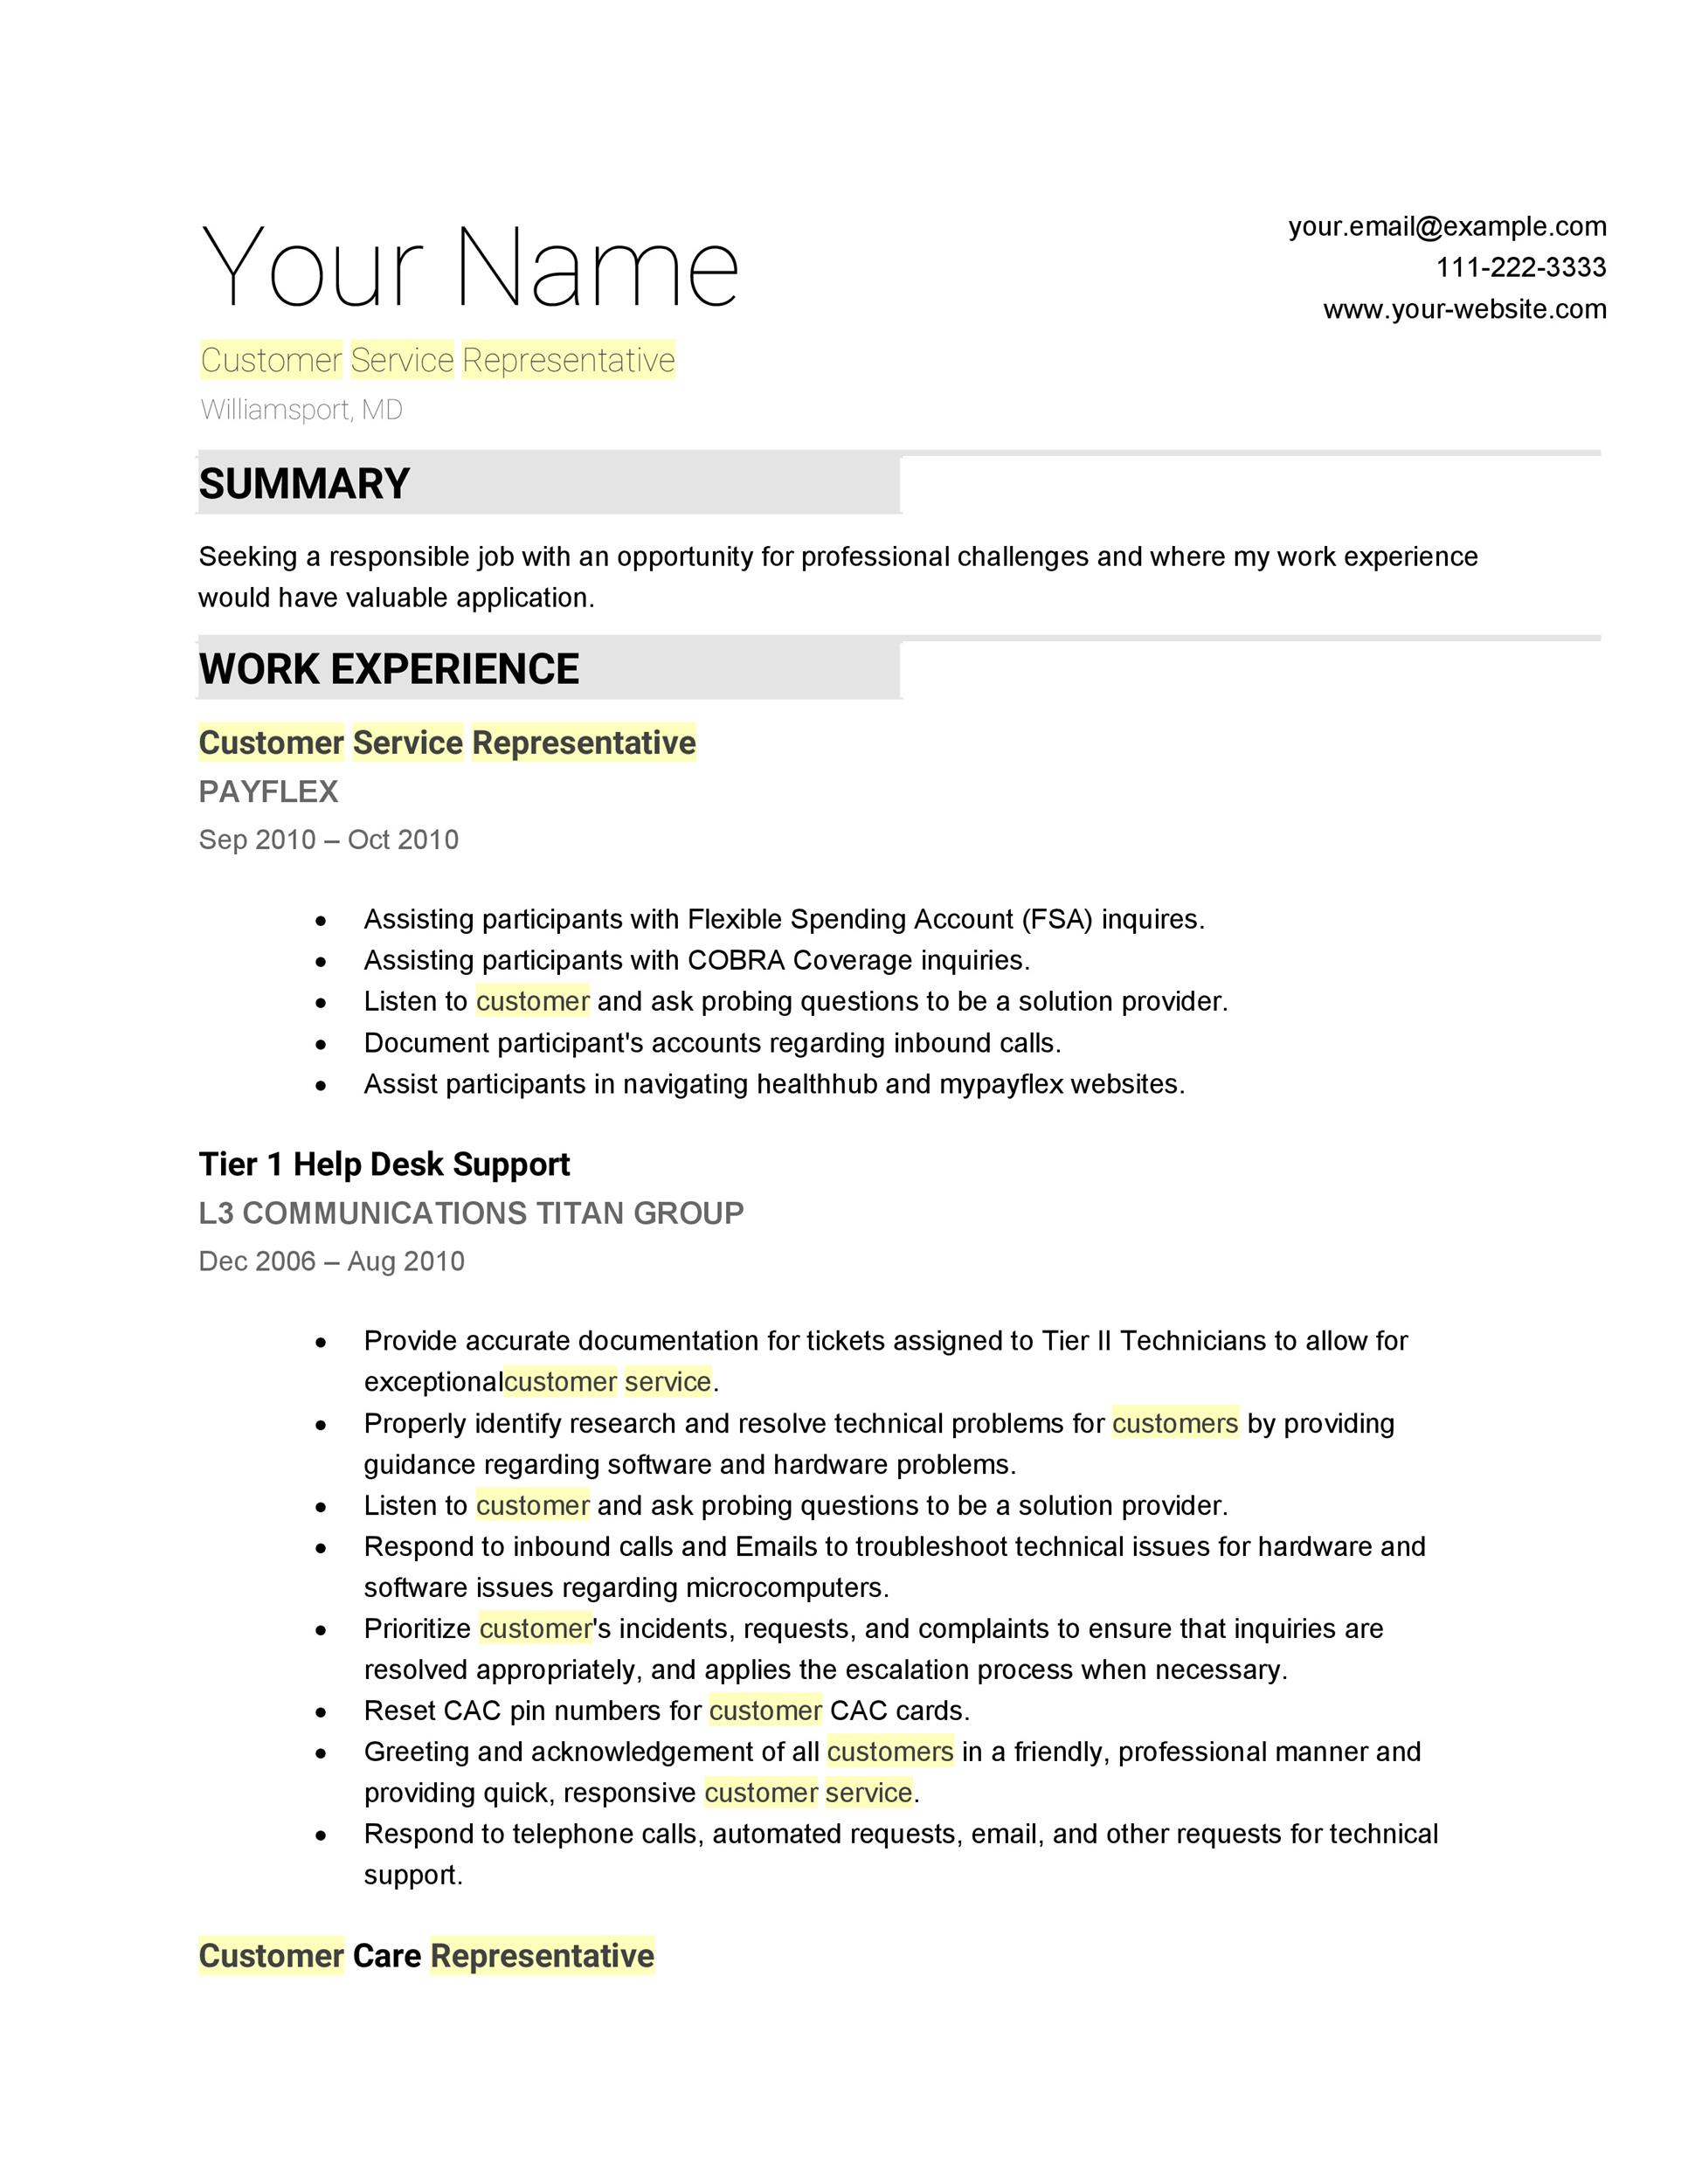 customer service resume templates - Samples Of Resume Formats